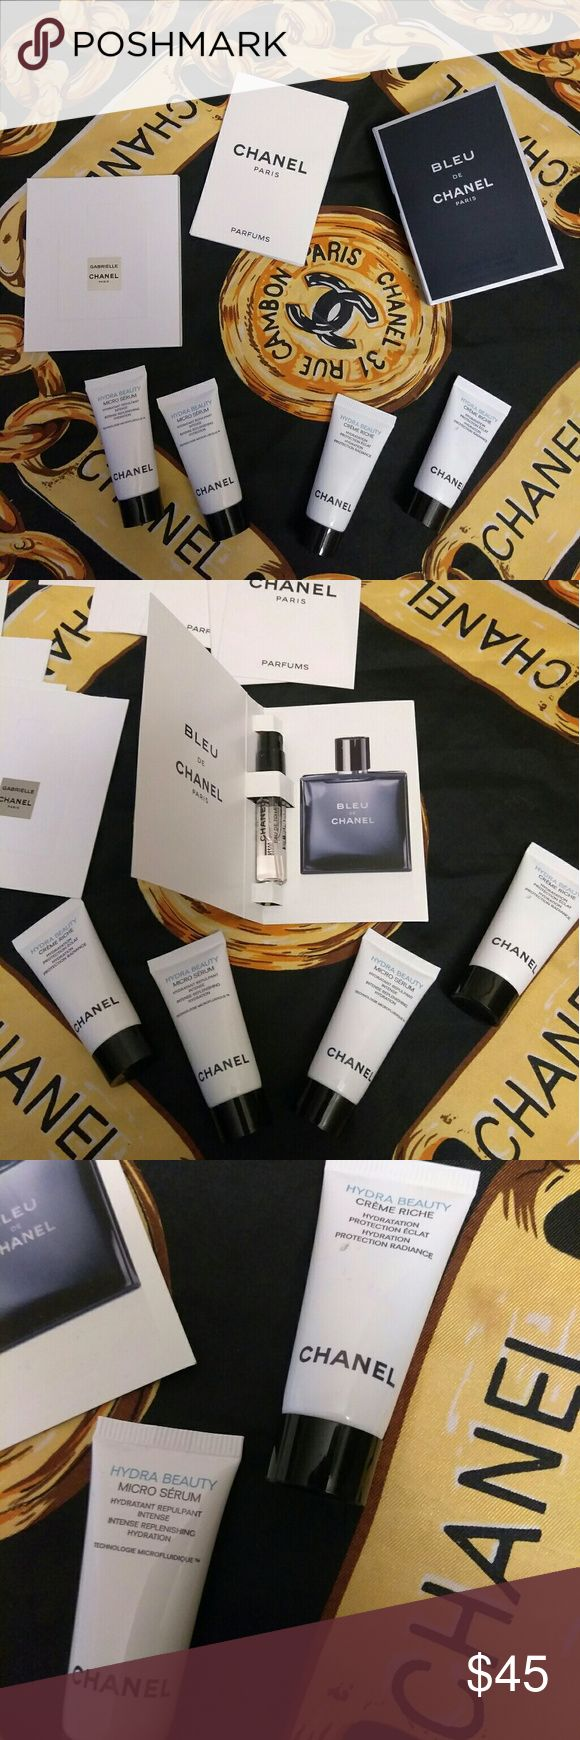 Lot of Chanel Bleu and cream and mico serum I Bleu de Chanel 0.06fl oz  2 cream Richie 0.17fl oz 2 micro serum 0.17fl oz  9 gabrielle Chanel perfume cards  11 Chanel Paris perfume cards CHANEL Other